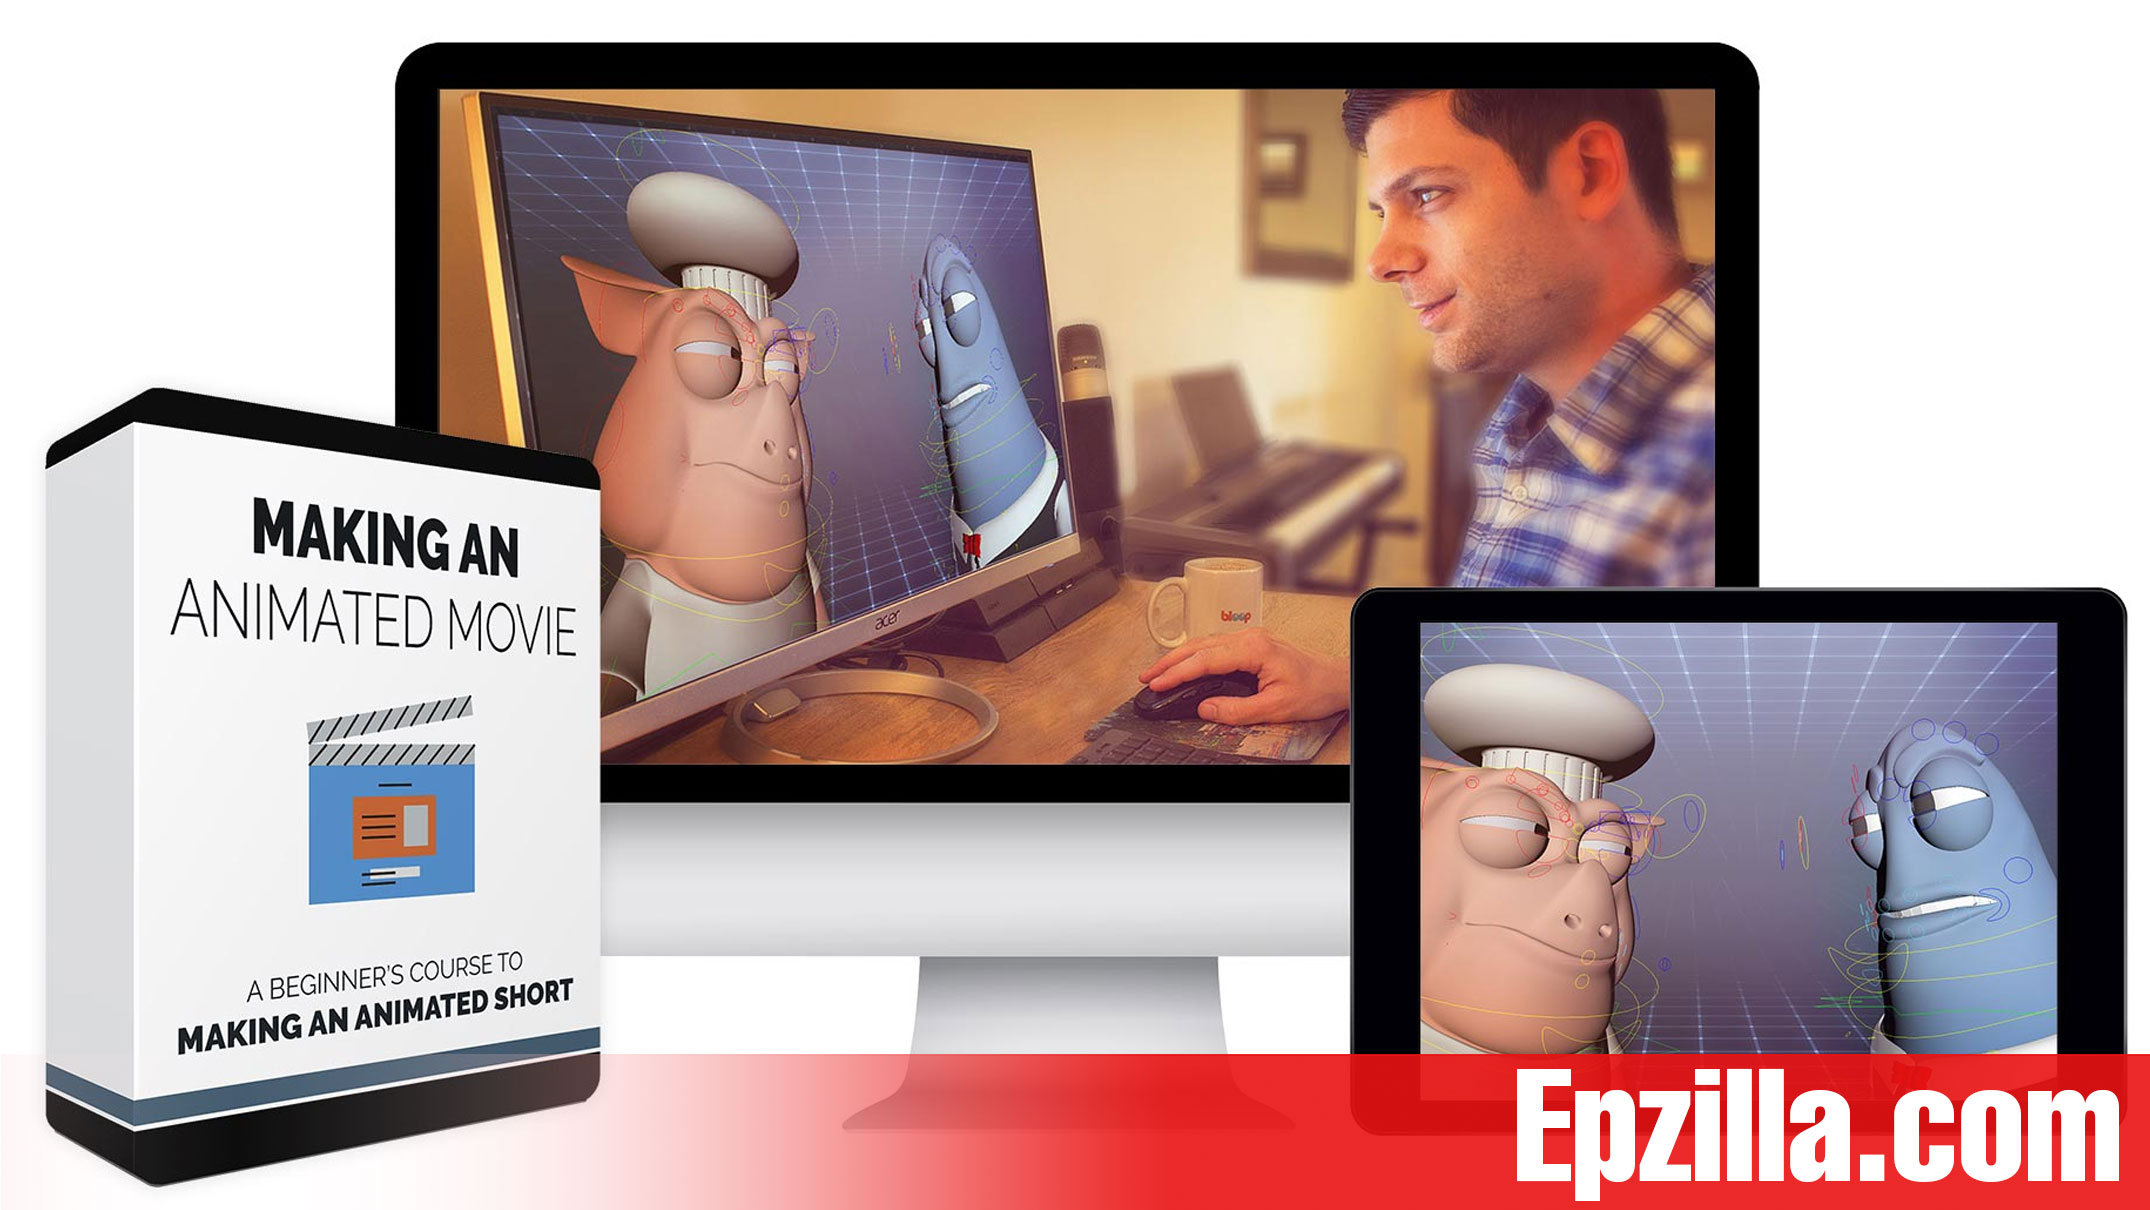 Bloop Animations Making an Animated Movie Free Download Epzilla.com Making an Animated Movie course - 30 HD Video Lessons